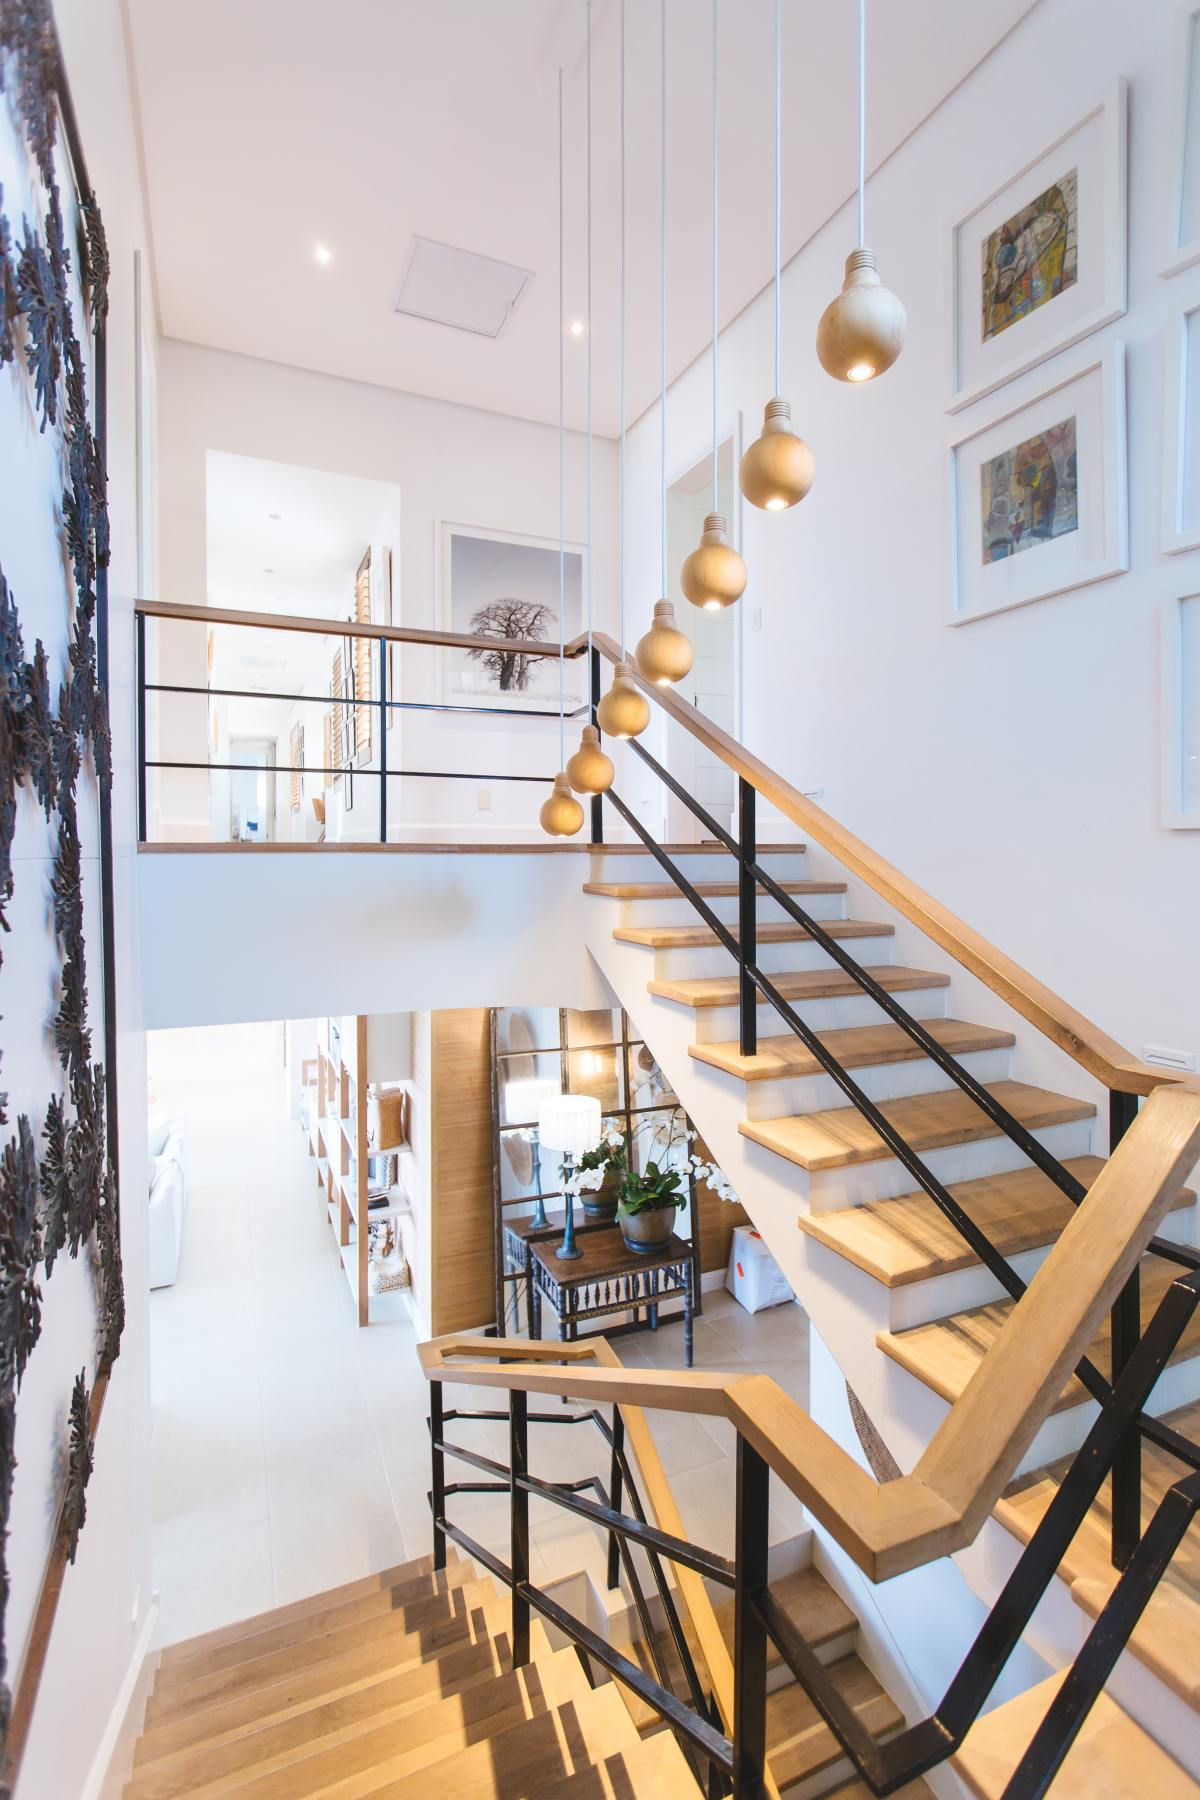 don't be discouraged: 6 powerful lessons from home remodeling